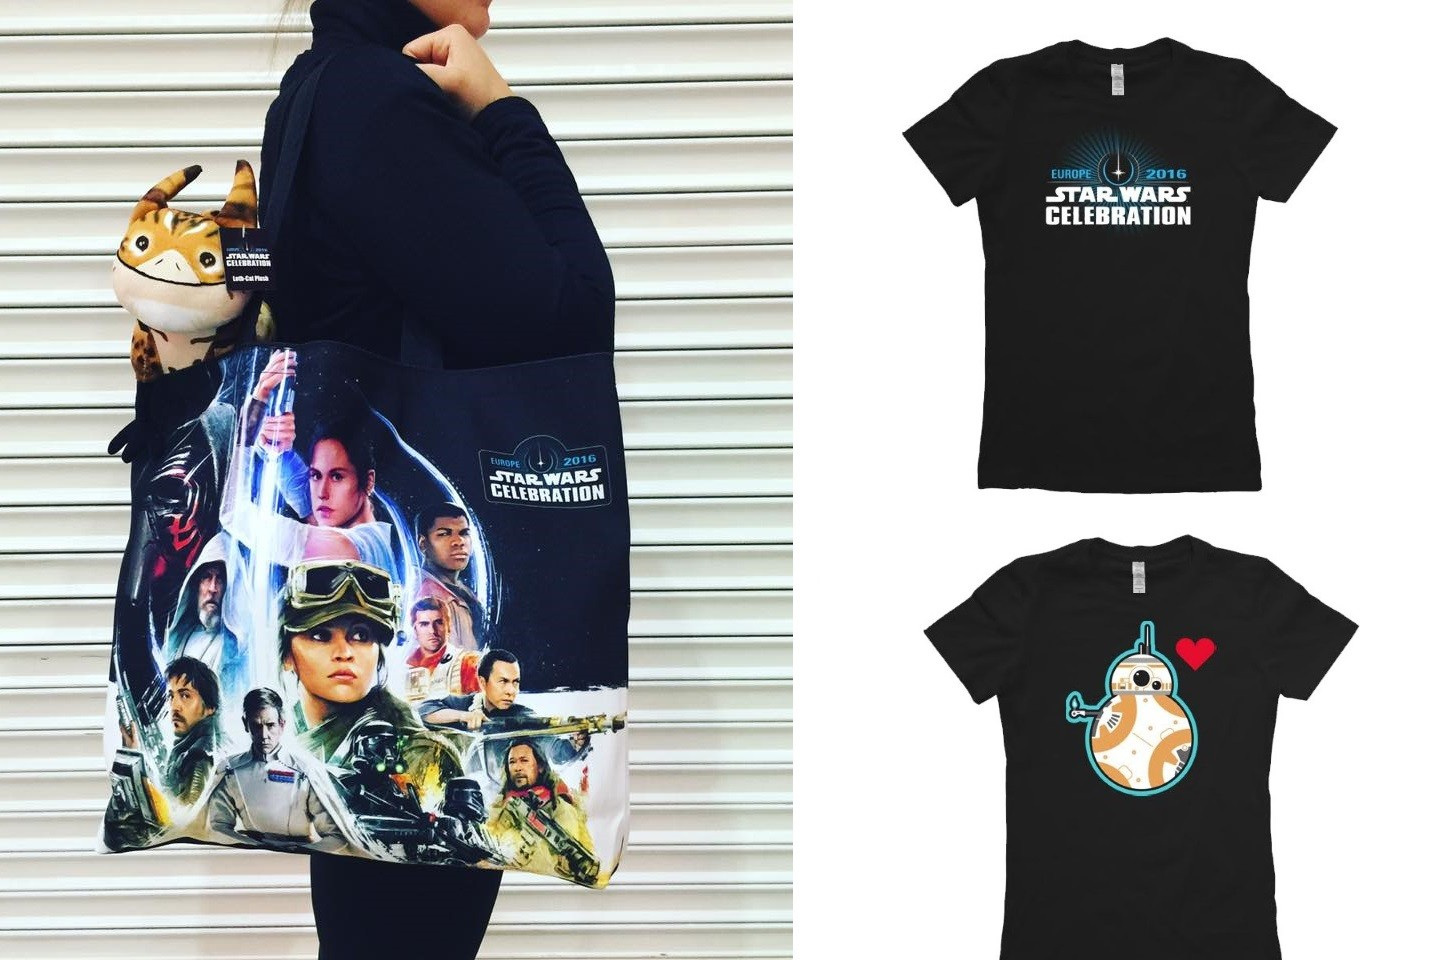 Exclusive apparel at Celebration Europe 2016